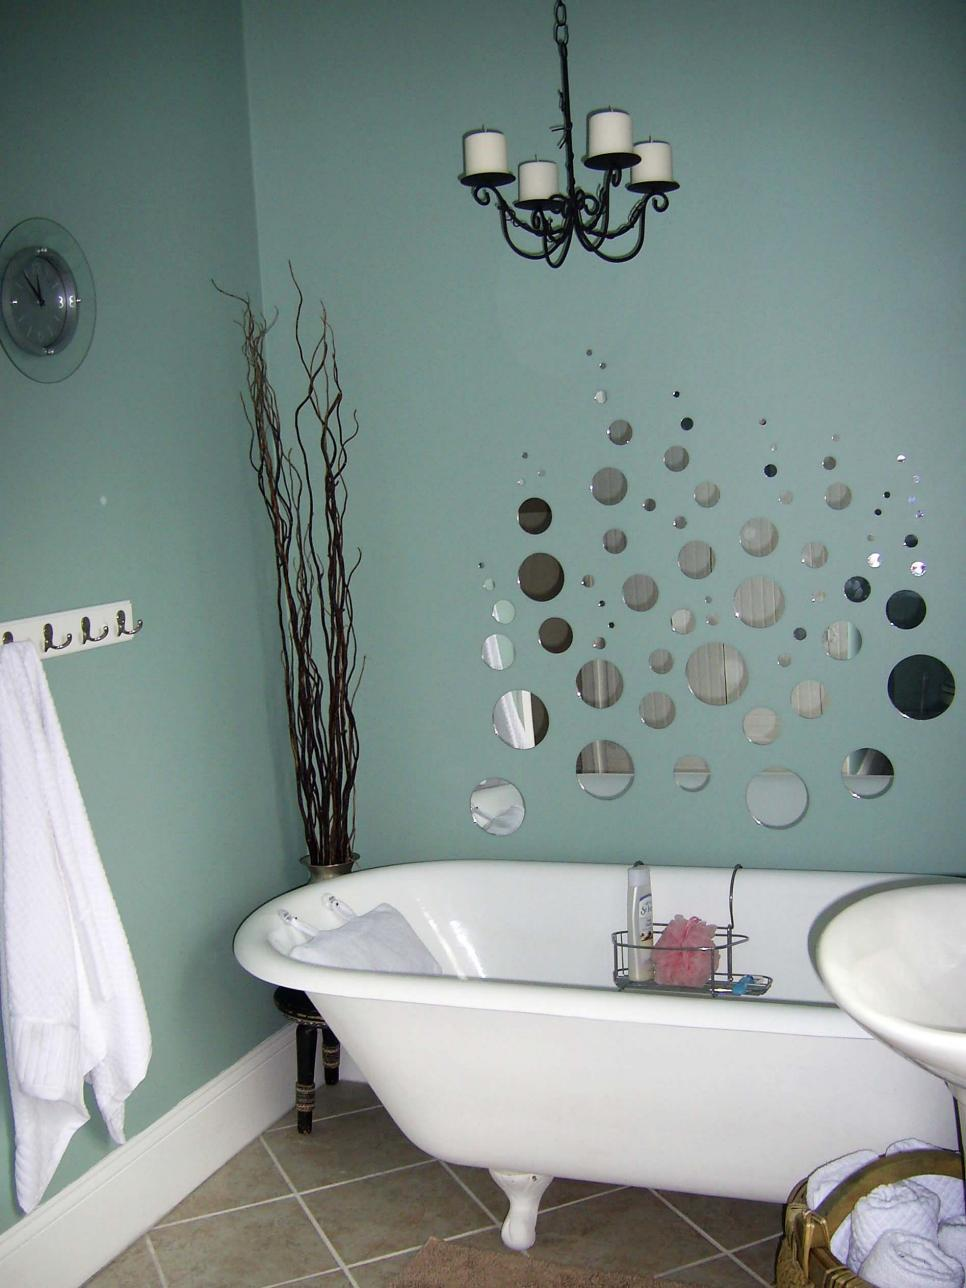 Bathrooms on a budget our 10 favorites from rate my space for Bathroom decorating tips